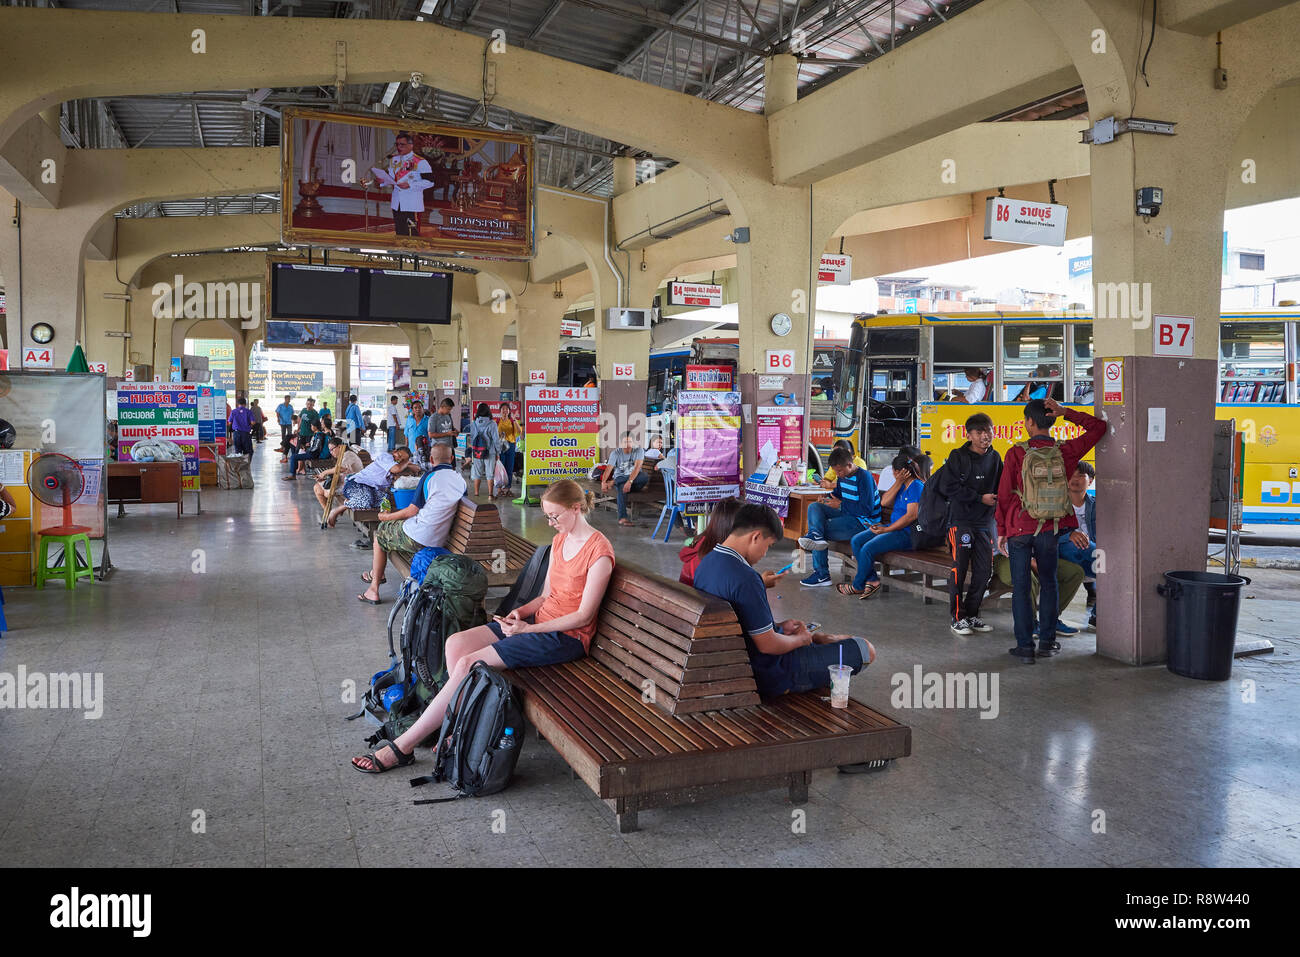 Passengers await in the departure area of  Kanchanaburi central bus terminal, in Thailand. Stock Photo